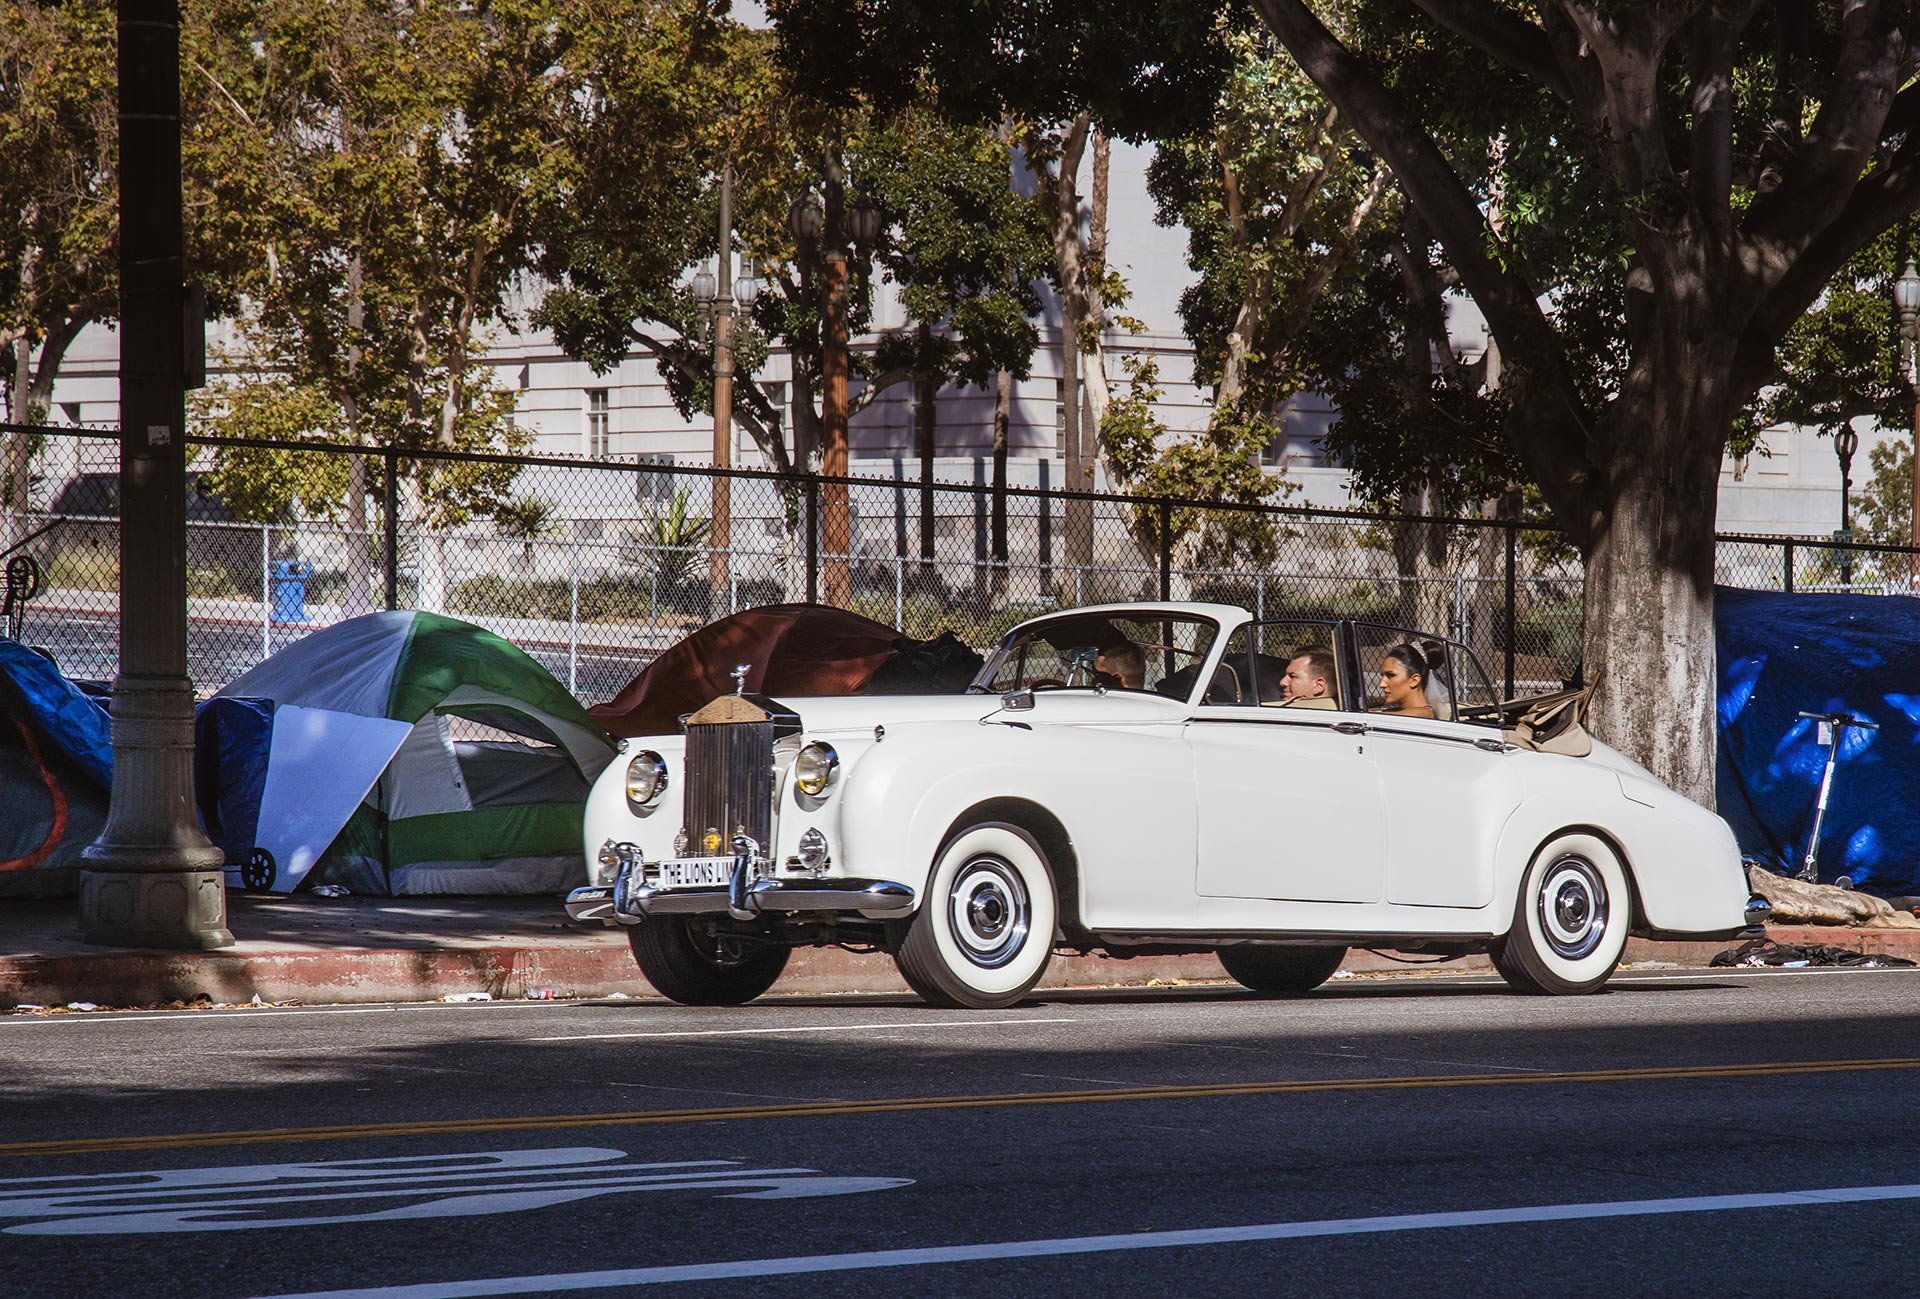 Vintage Rolls Royce in Downtown Los Angeles